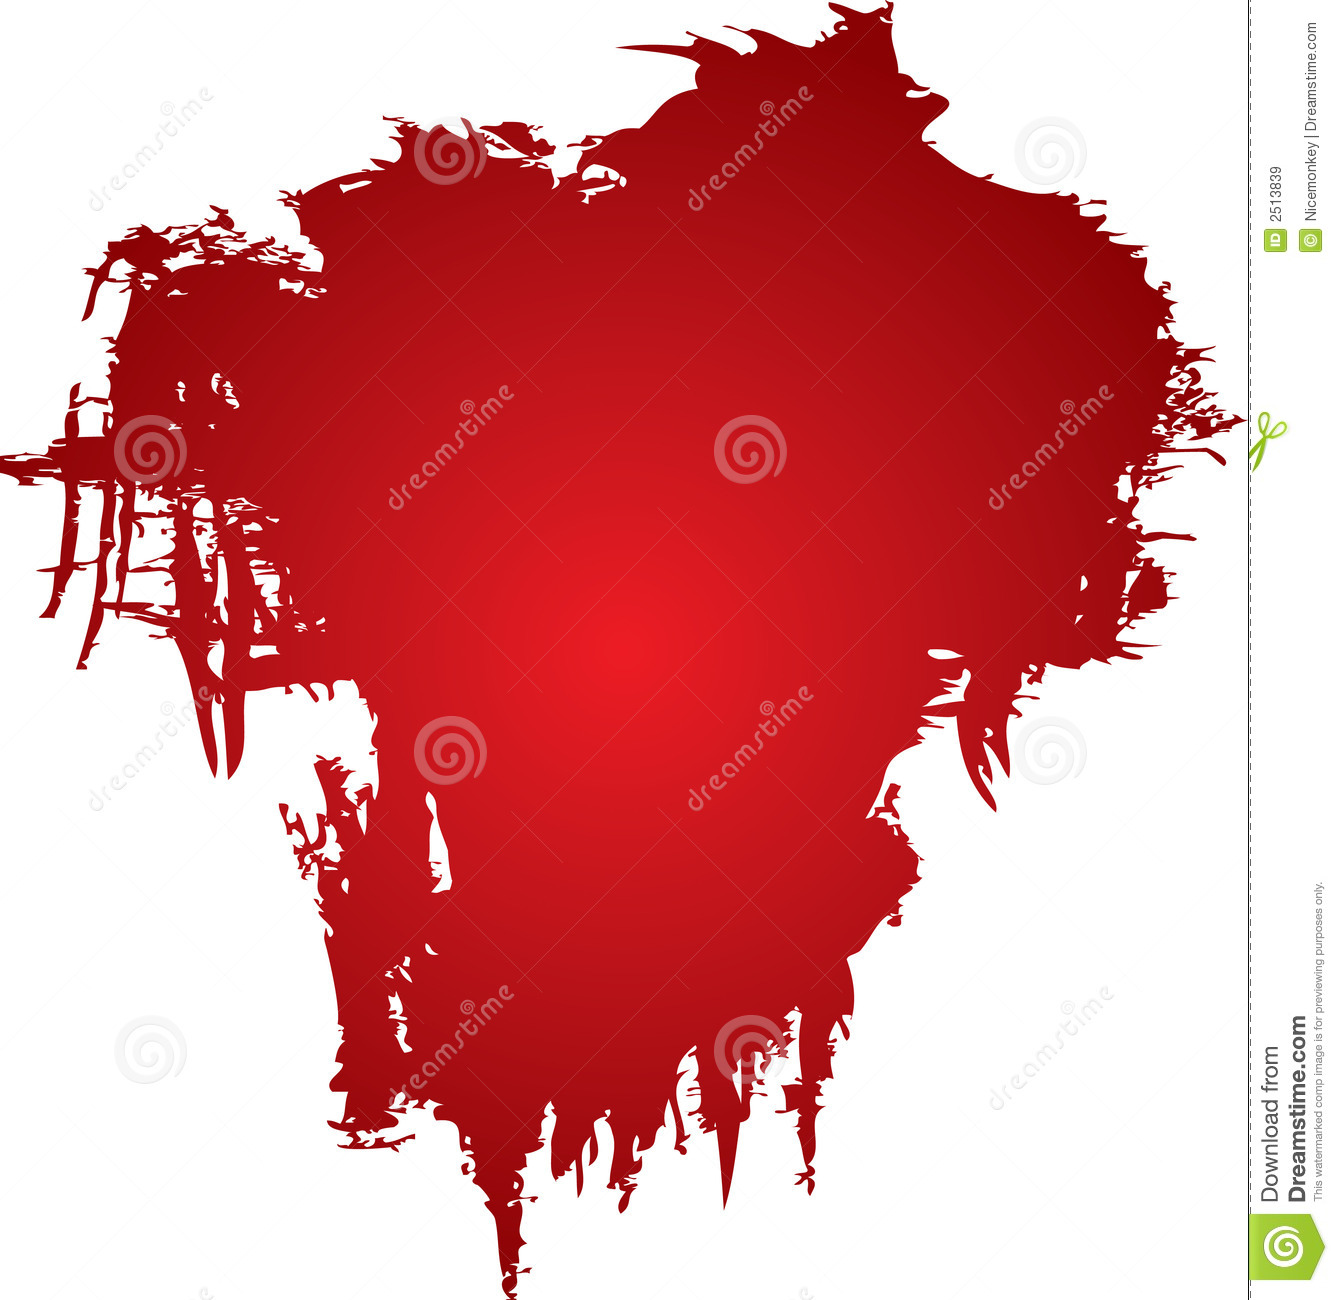 Blood Stain Clipart.